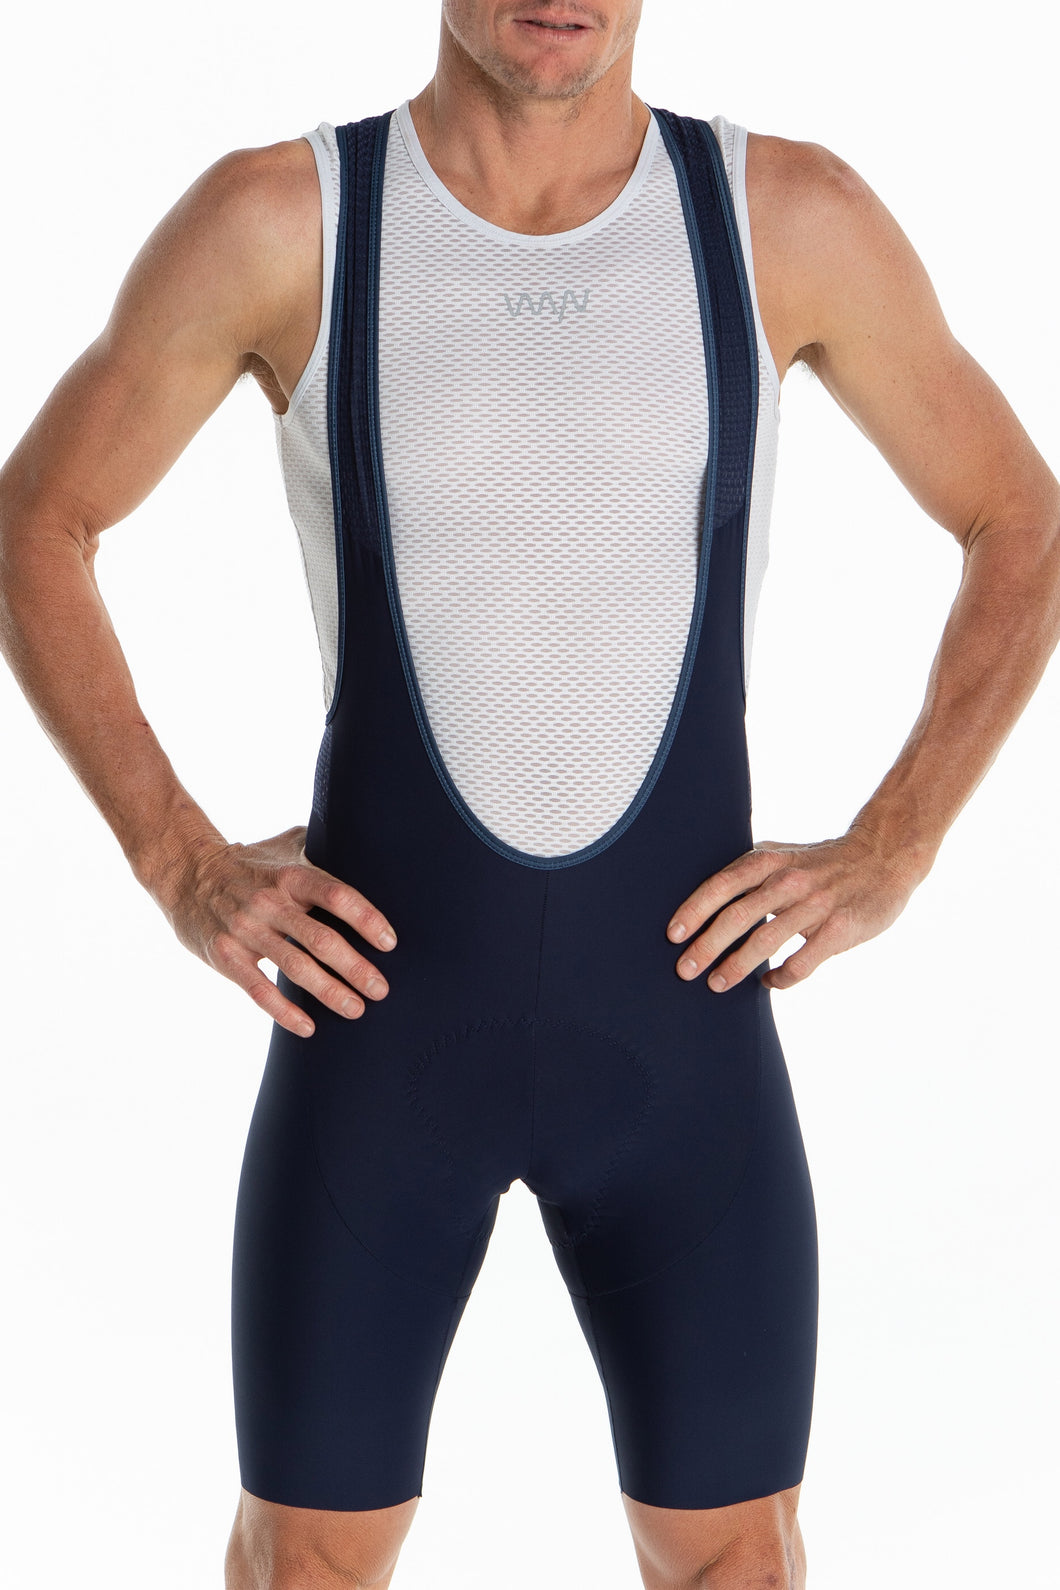 men's LUCEO bib shorts - navy/teal